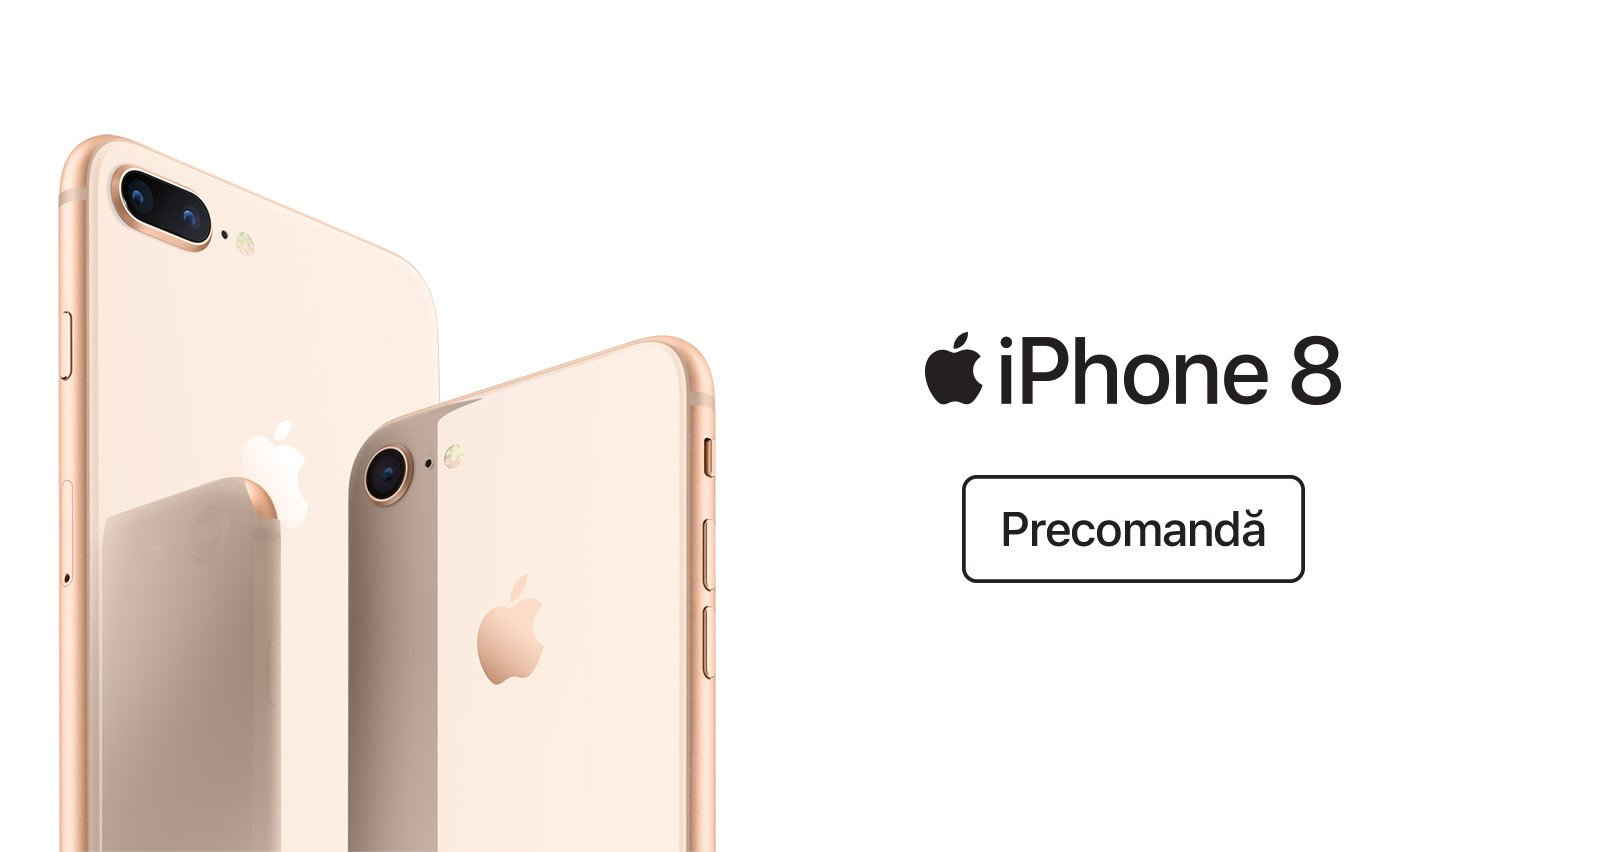 iPhone 8 si iPhone 8 plus precomanda eMAG